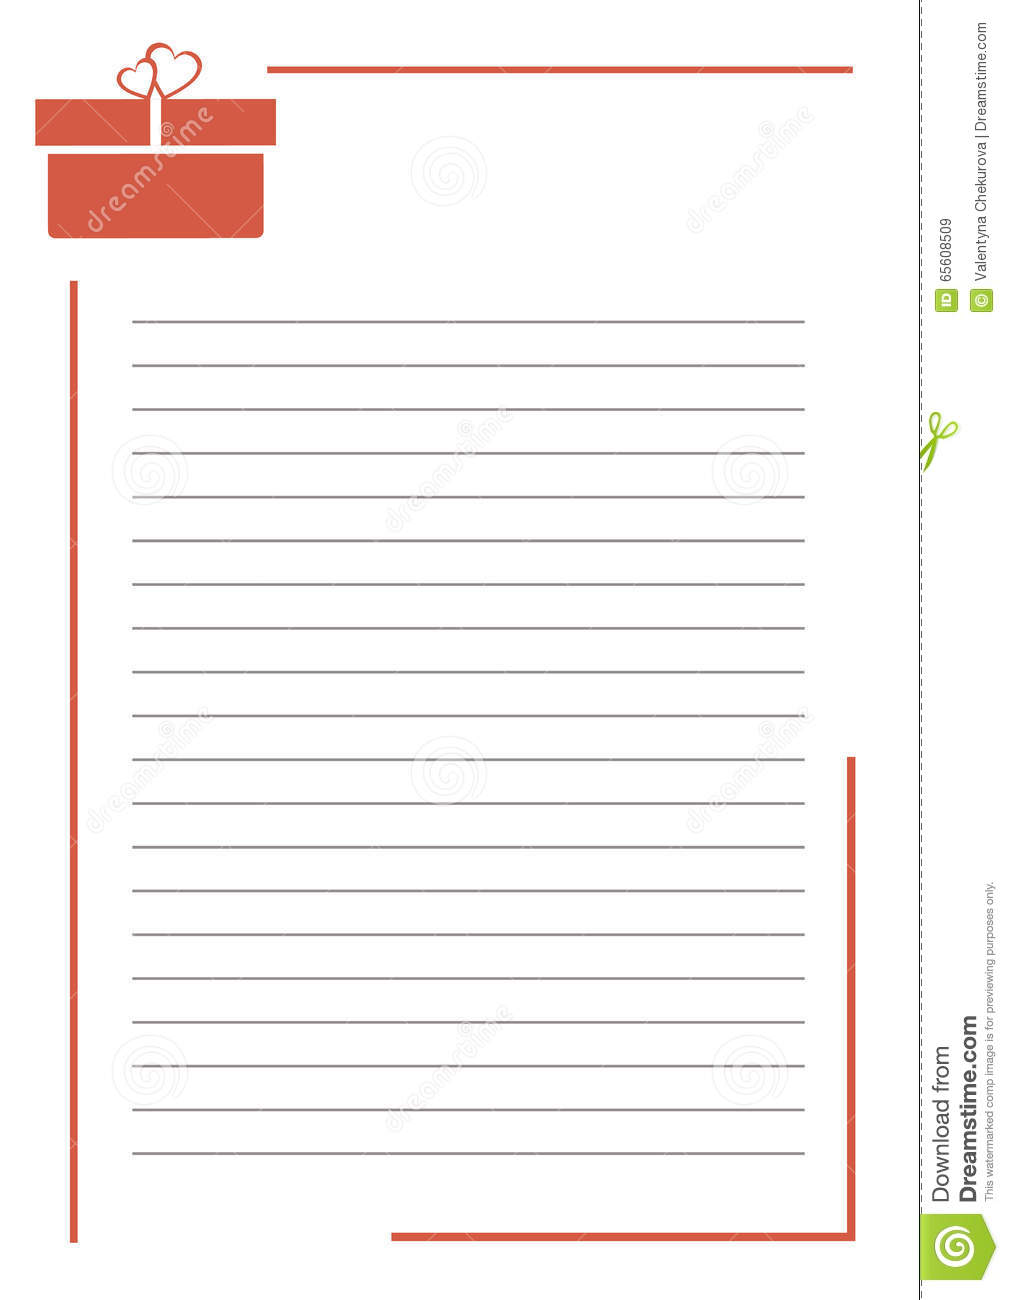 005 Vector Blank Letter Greeting Card White Paper Form Red Gift Box Lines Border Format Size Research Note Cards Examples For Unique A Example Template Full